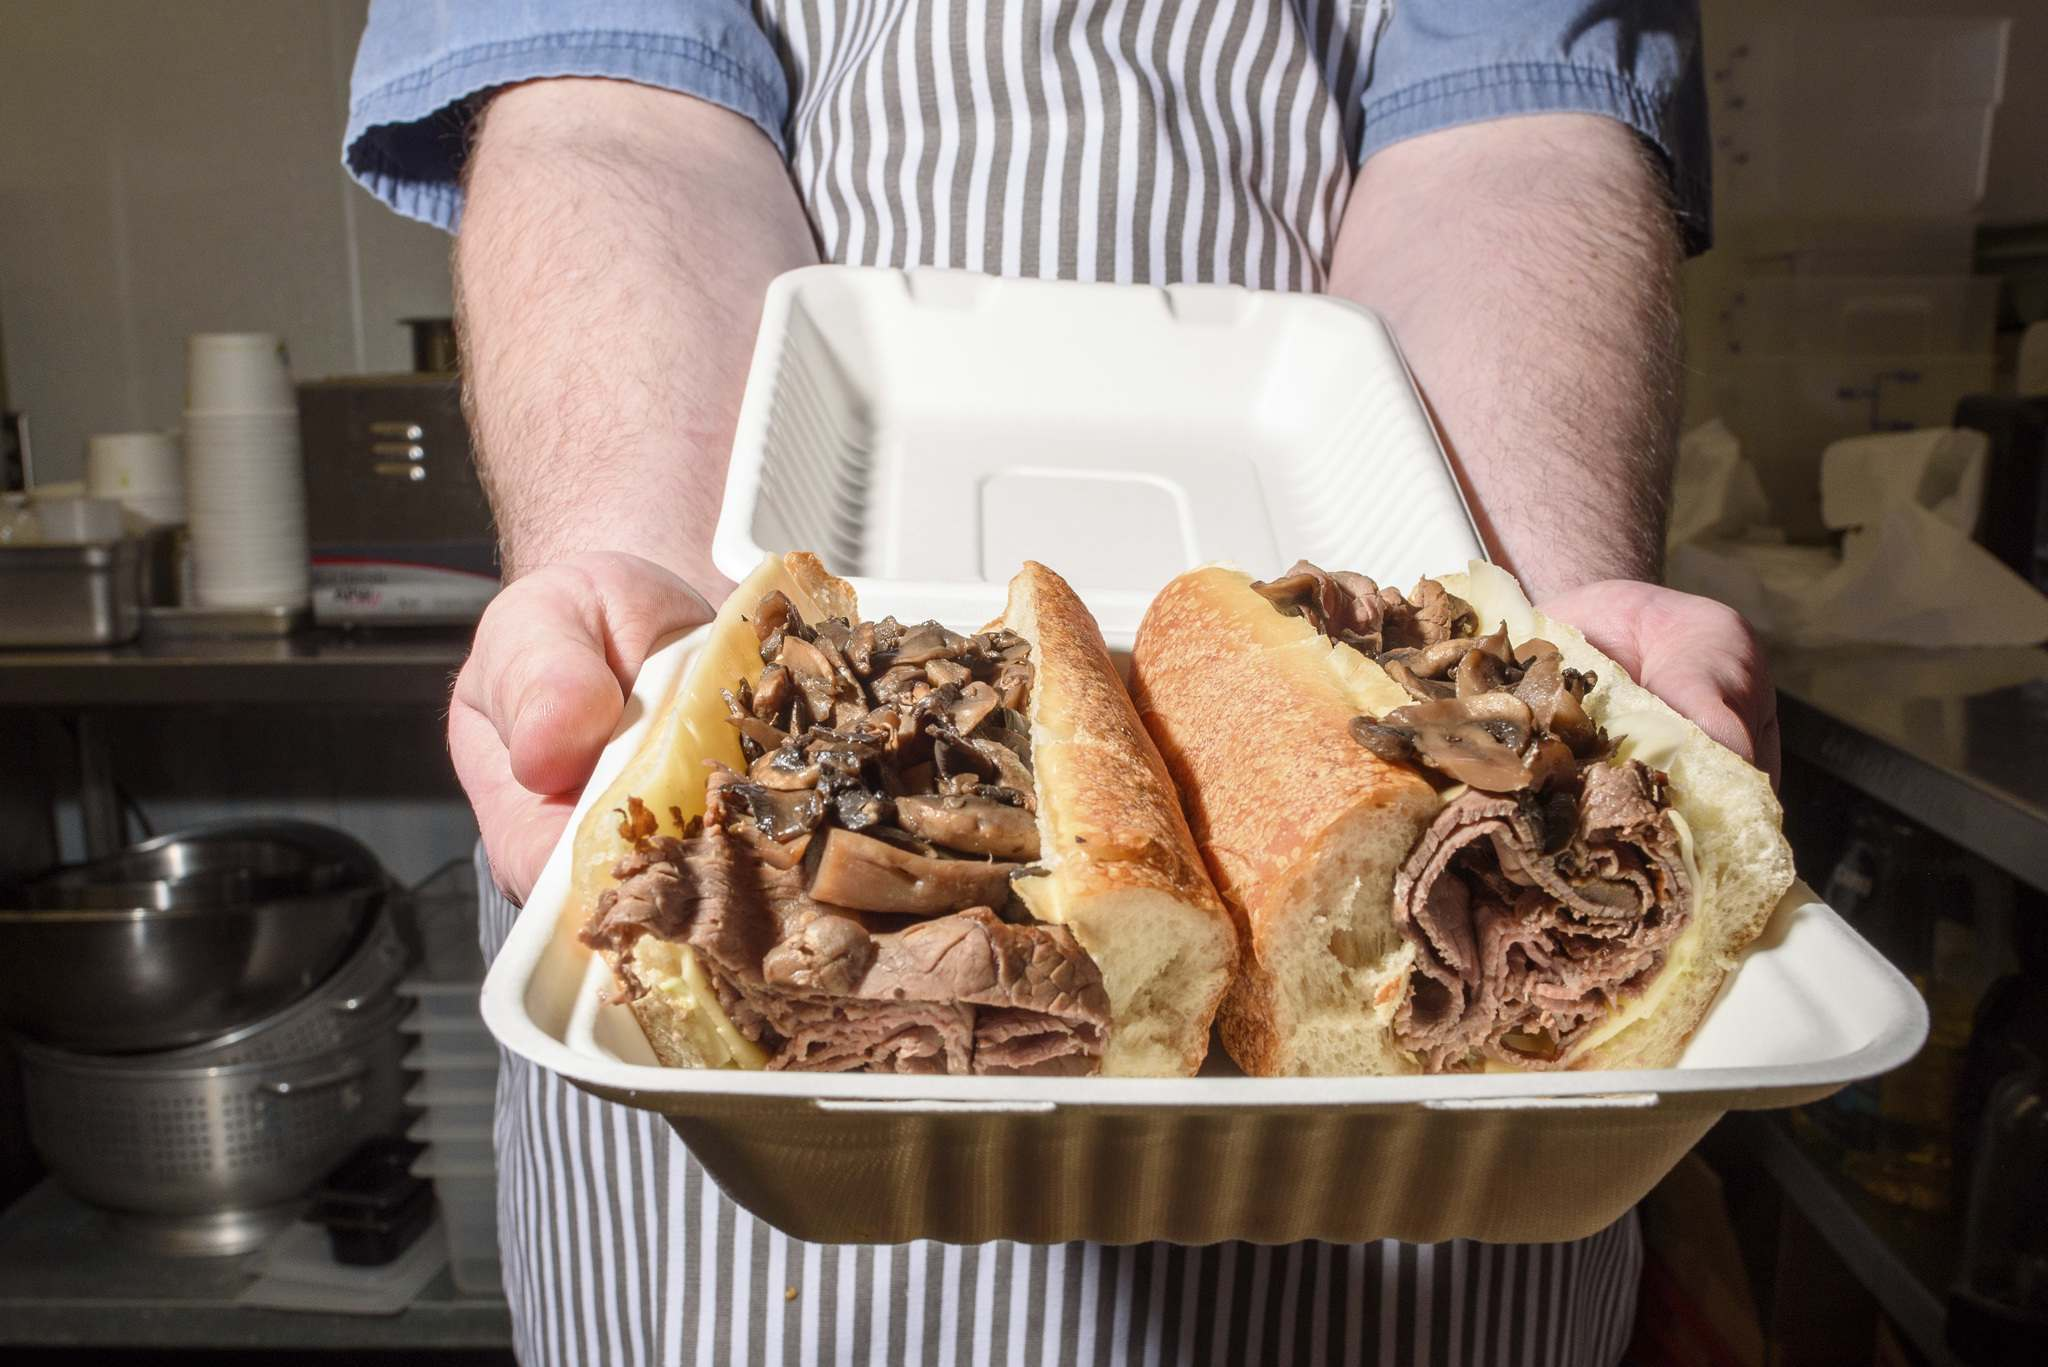 One of the popular beef dip sandwiches from Nick's on Broadway is served up by owner-chef Nick Graumann, who wanted to have a cafeteria-style restaurant where sandwiches were the stars of the show. (Jesse Boily / Winnipeg Free Press)</p>